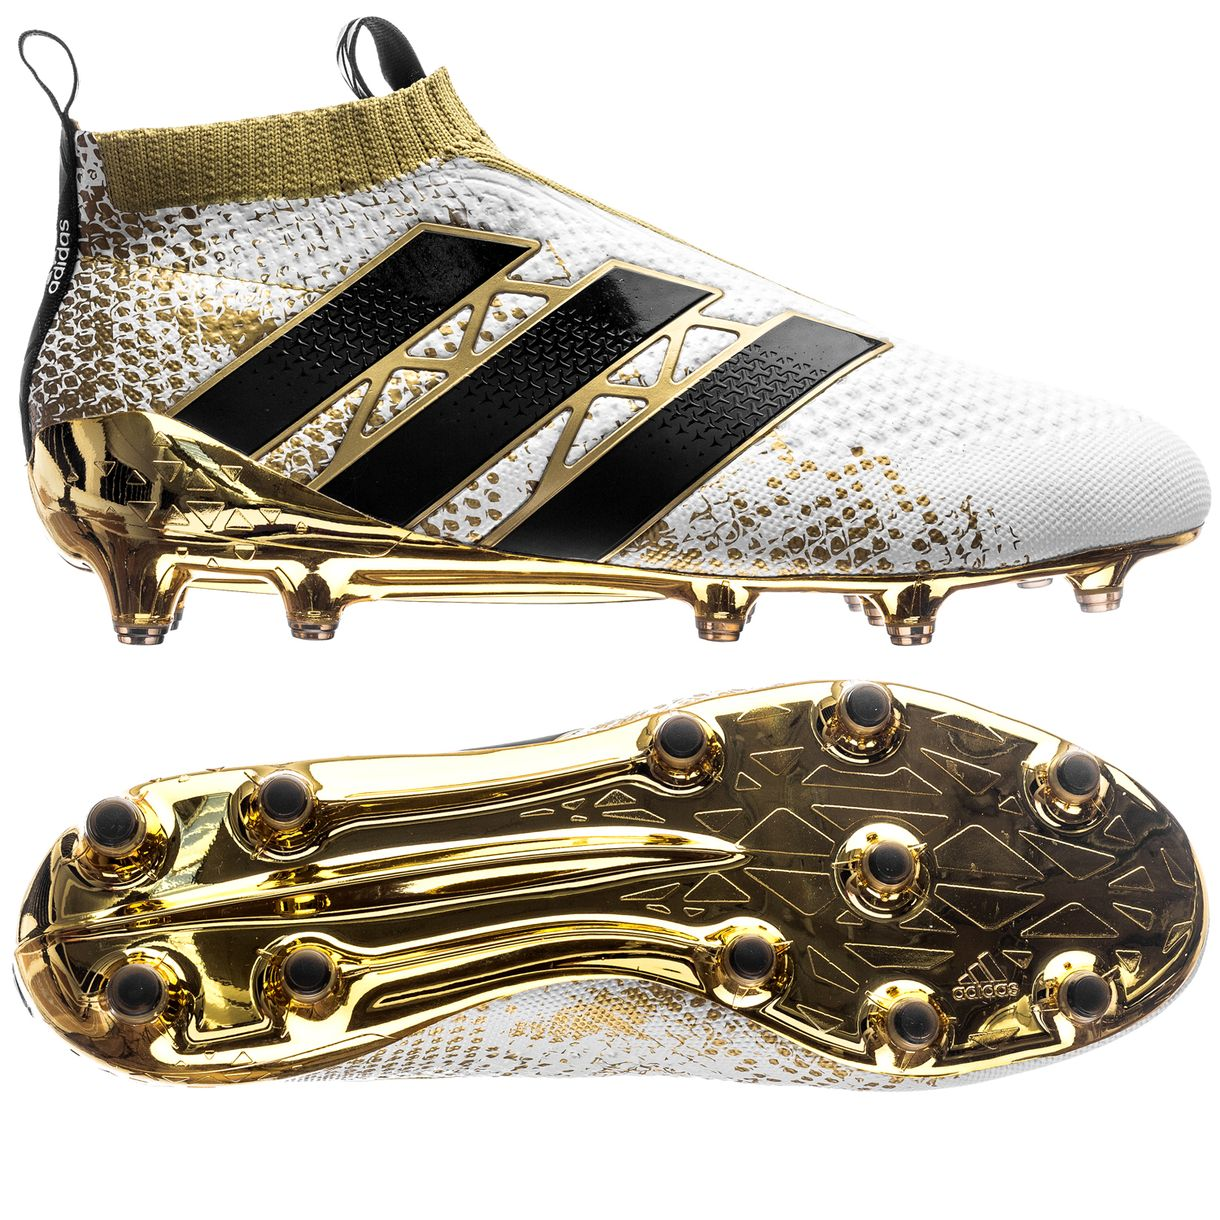 ... Click to enlarge image  adidas ace 16 purecontrol fg ag stellar pack white core black gold metallic e.jpg  ... 7917d8d353